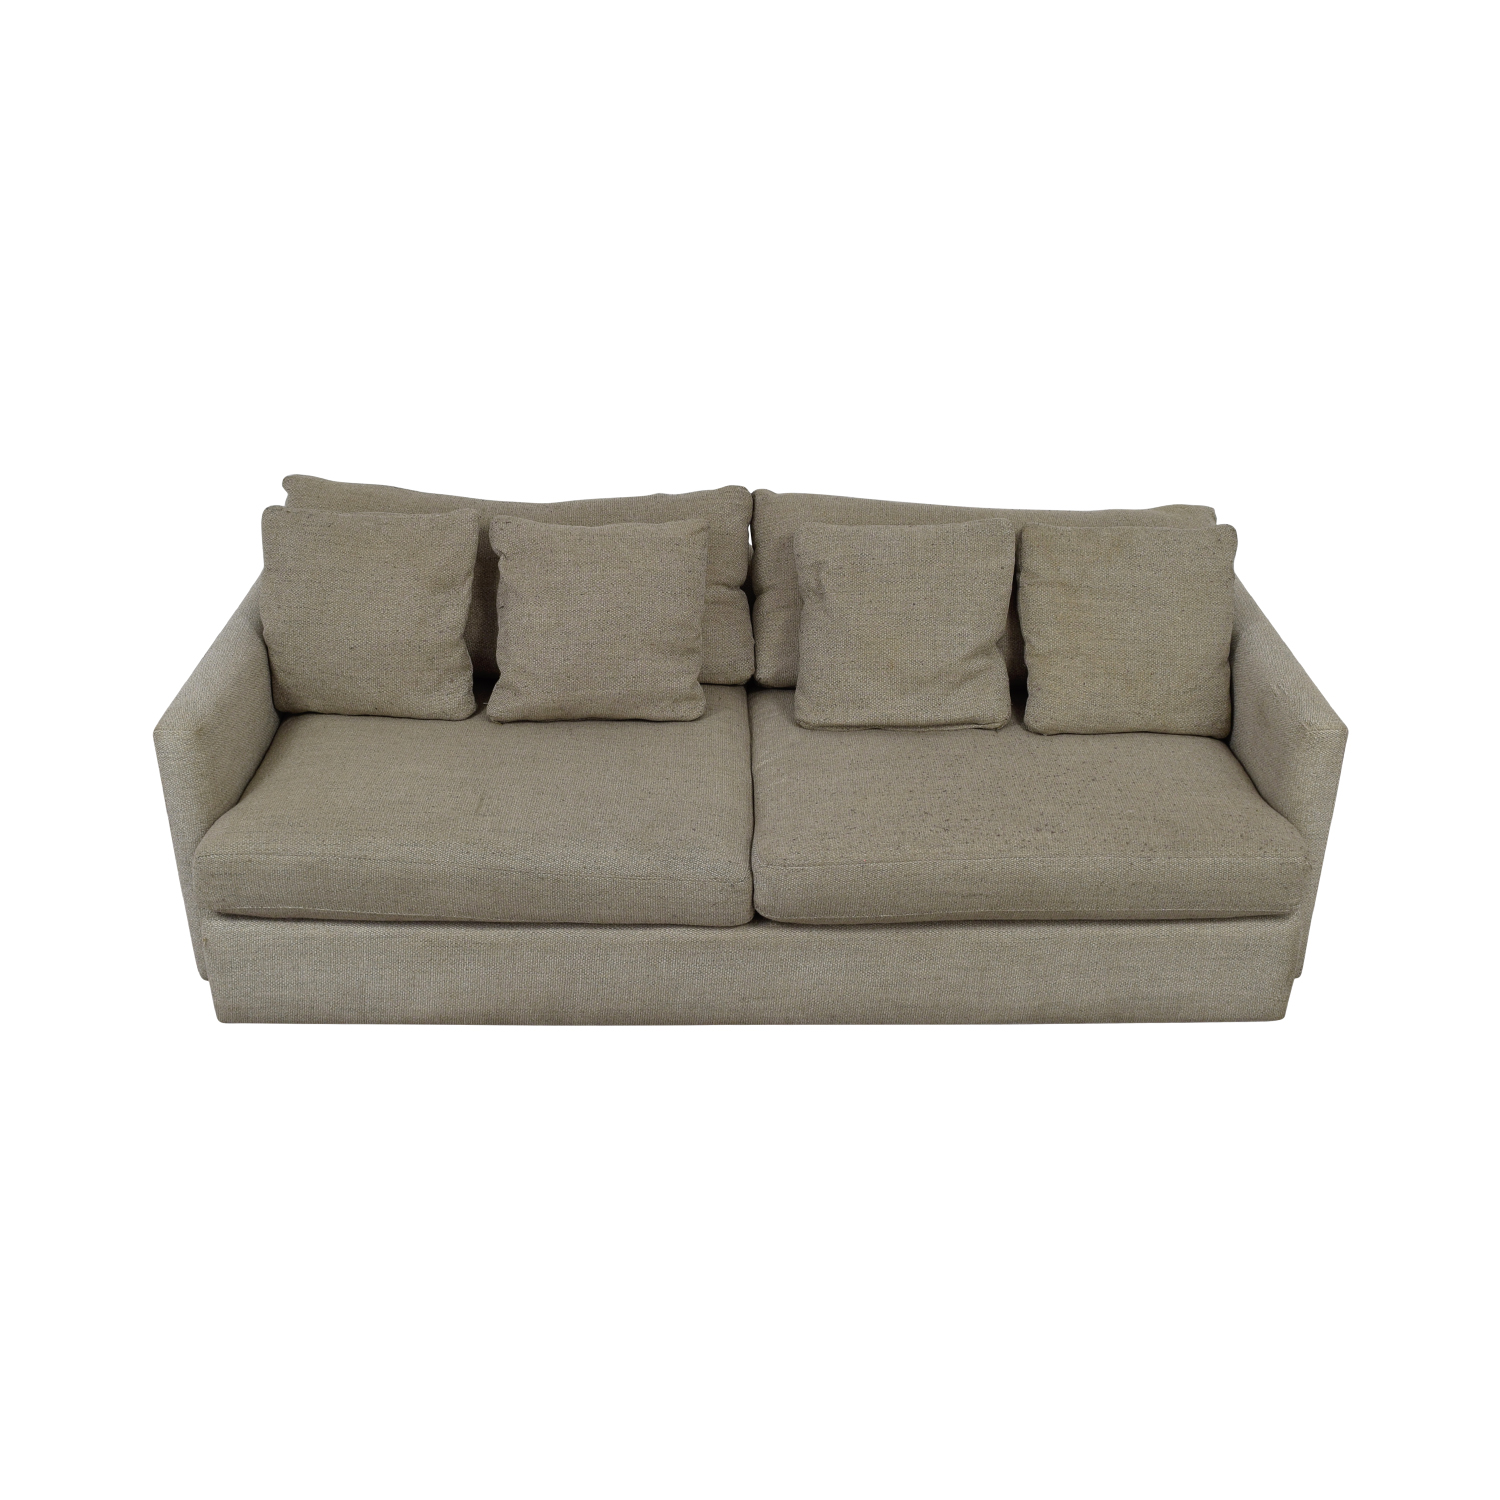 shop Crate & Barrel Cream Two-Cushion Sofa Crate & Barrel Sofas